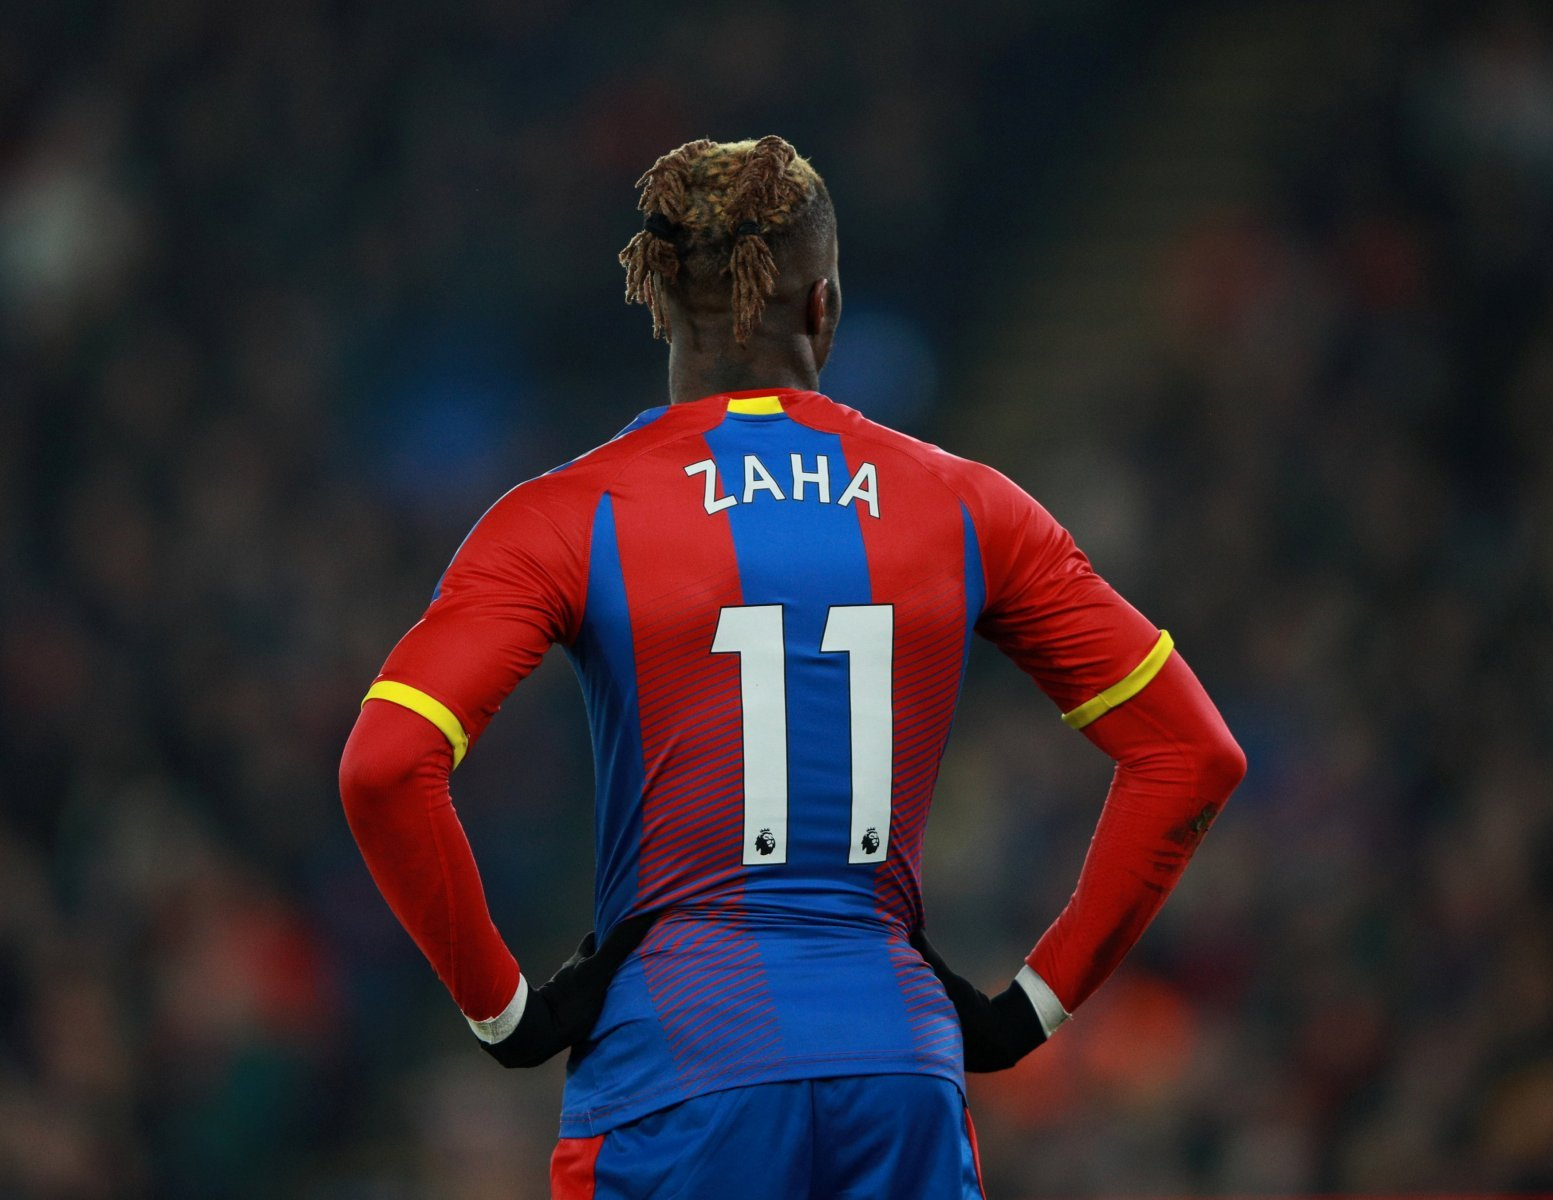 Zaha has hit the nail on the head with his honest take on Crystal Palace following Liverpool loss